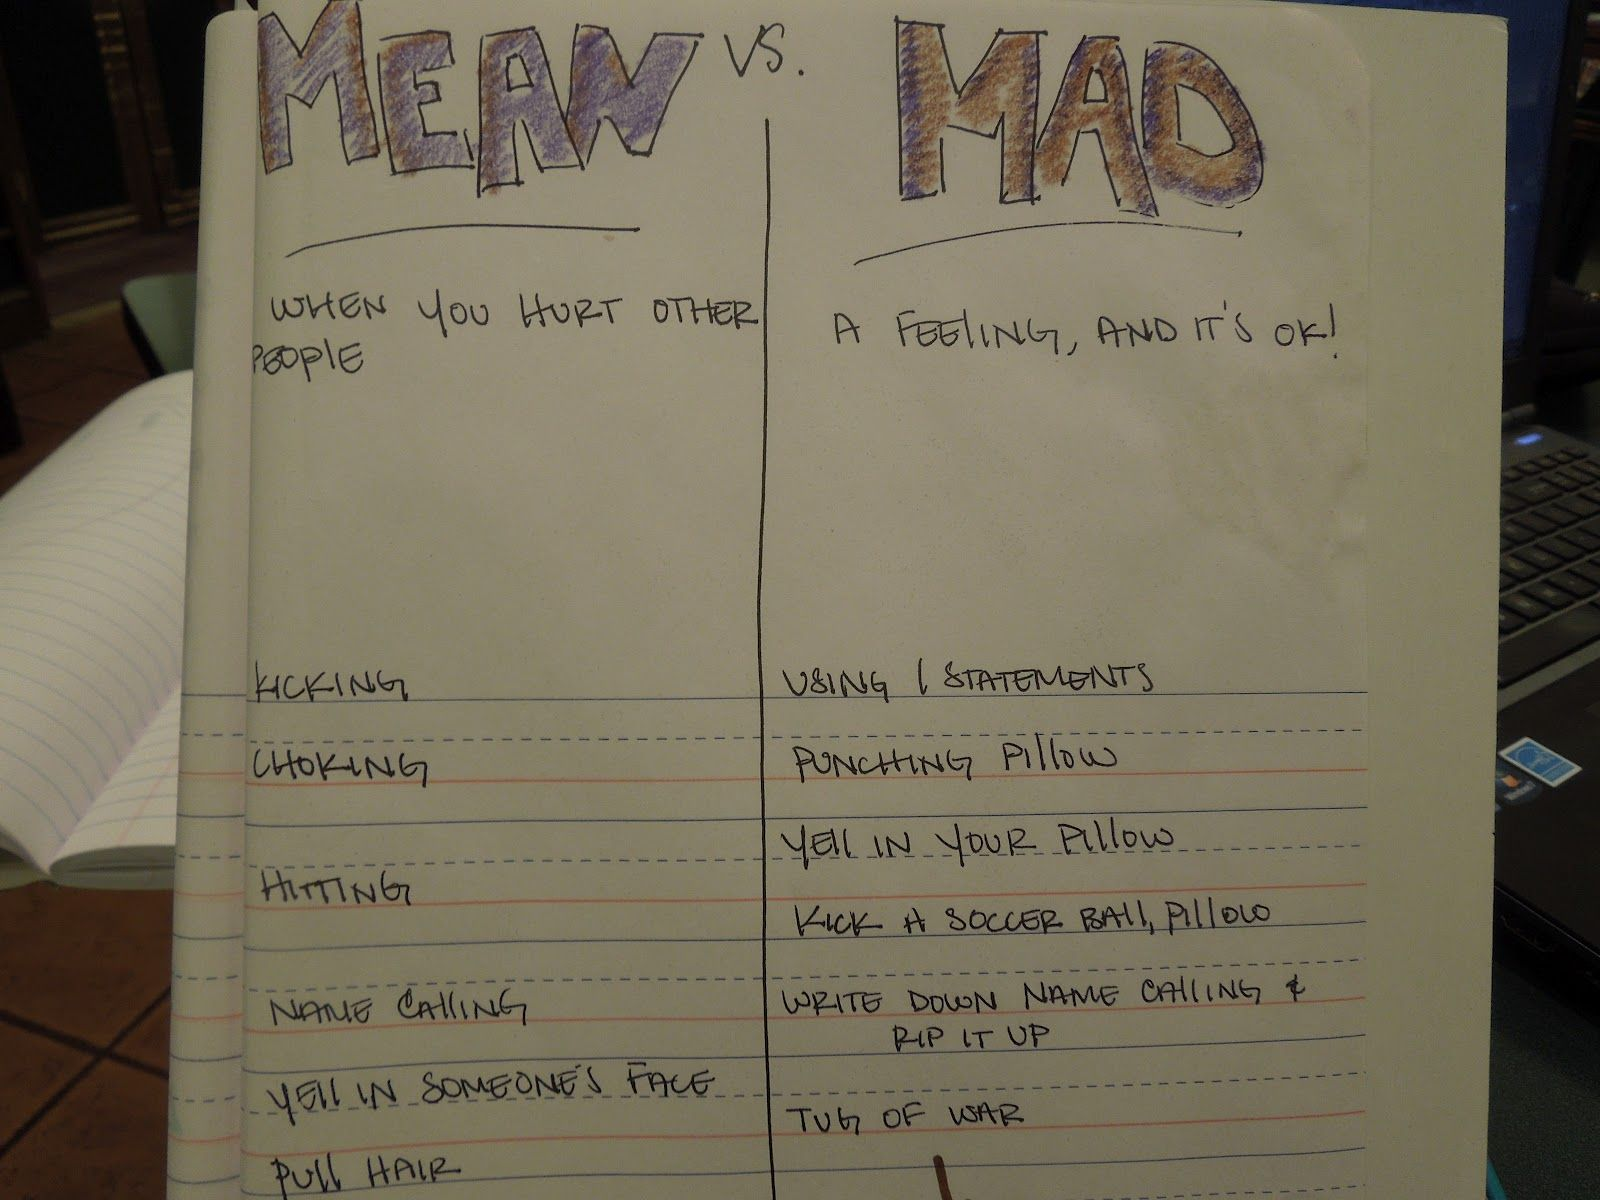 Behavioral Interventions For Kids Mad Vs Mean